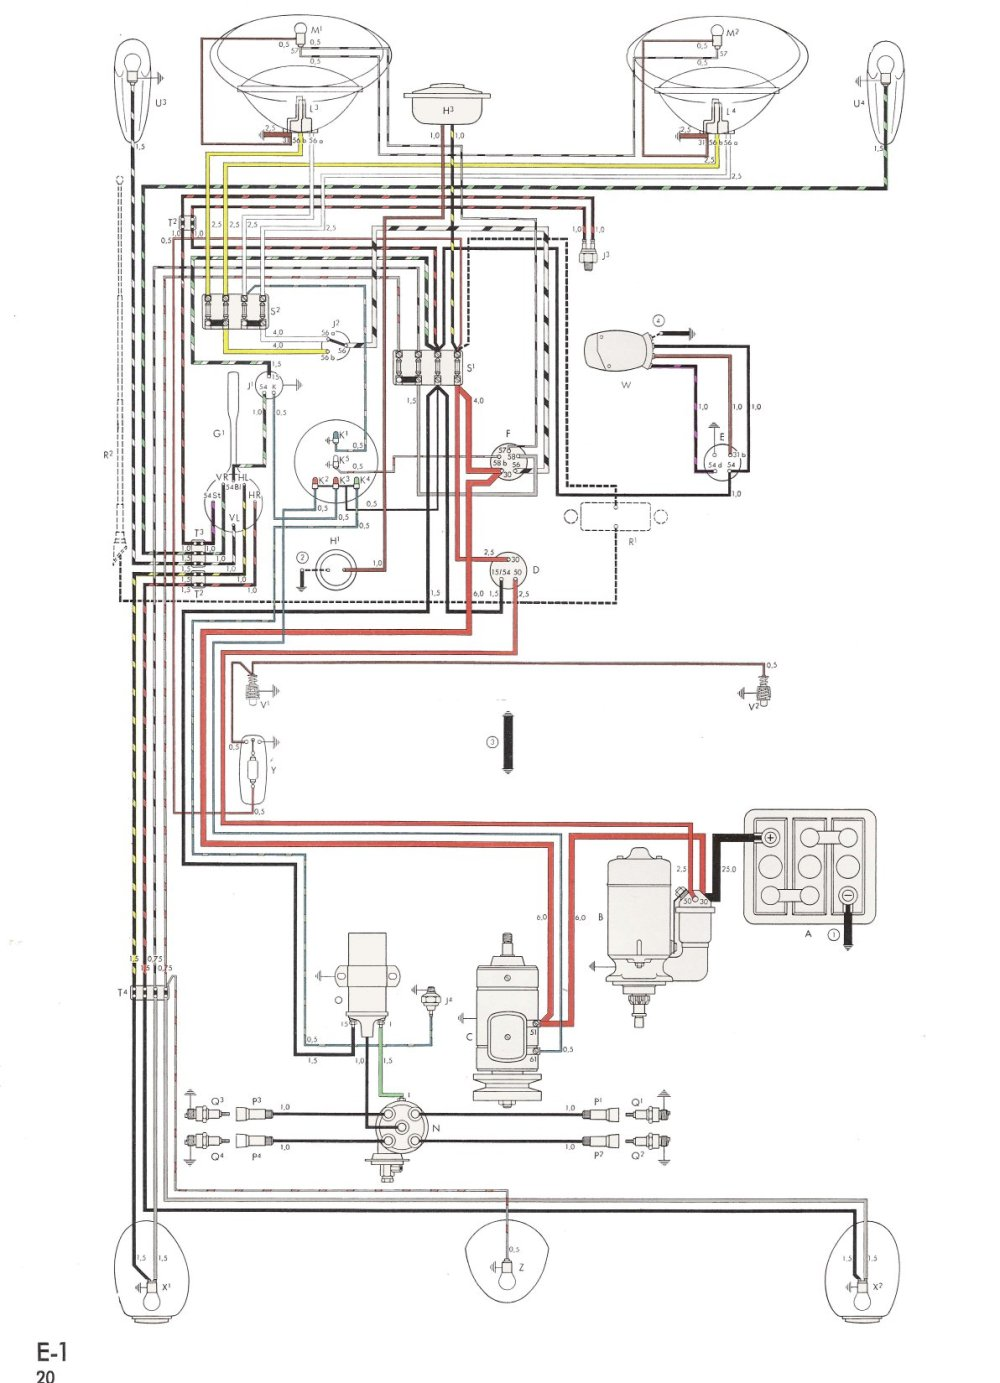 medium resolution of wiring diagram for 1973 vw beetle wiring diagram toolbox 1974 vw bug wiring relay 1974 vw bug wiring